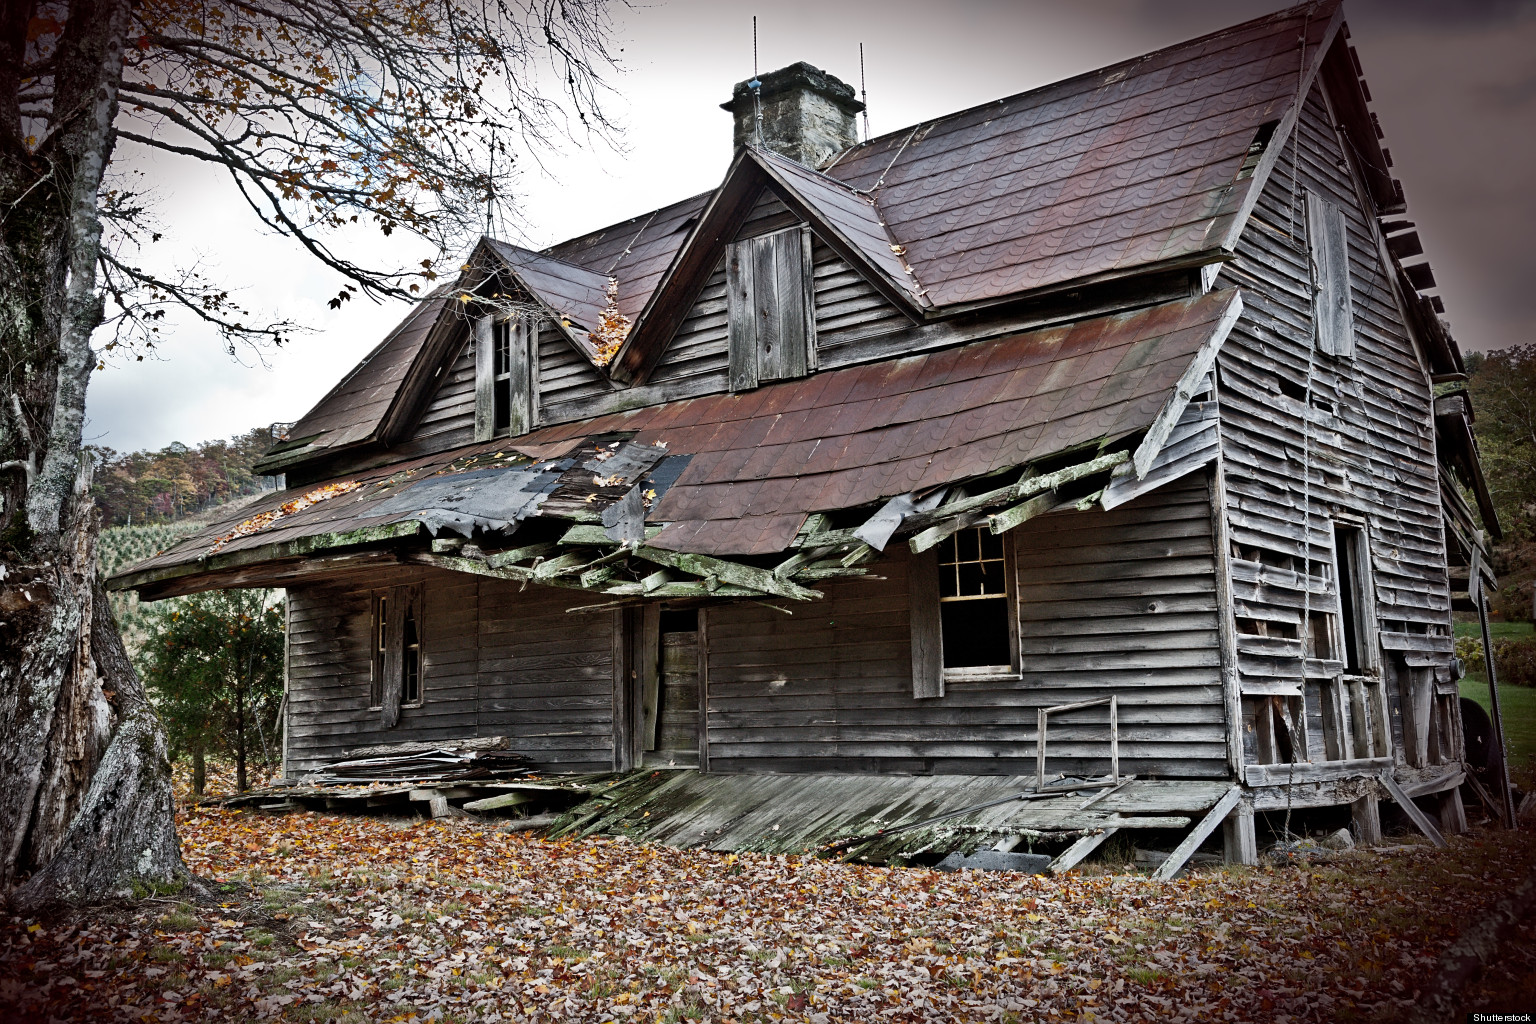 Best towns to find haunted houses trulia huffpost for Classic houses images